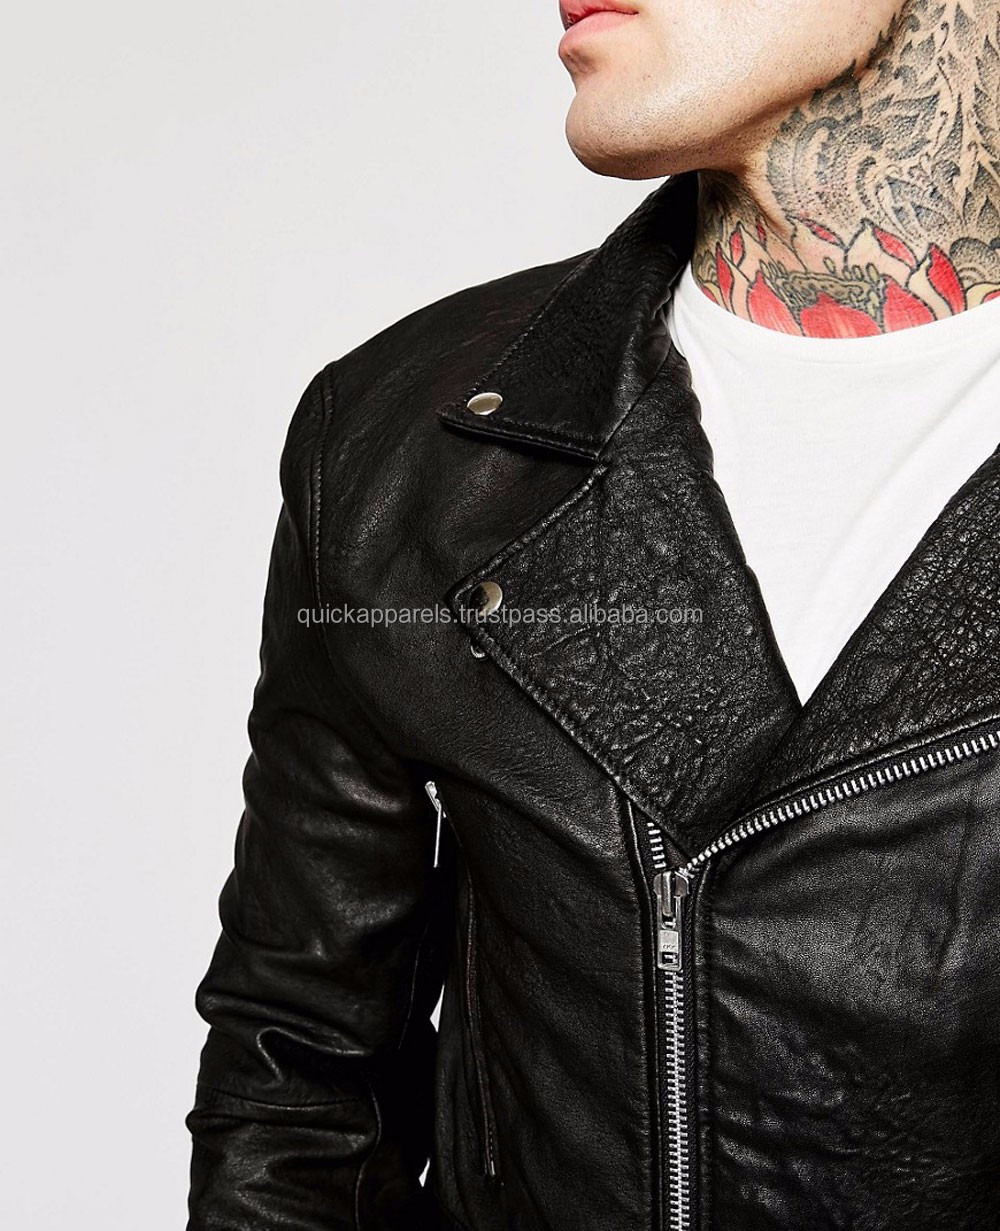 Wholesale Custom Brand Names Market Men's Motorbike Leather Jacket